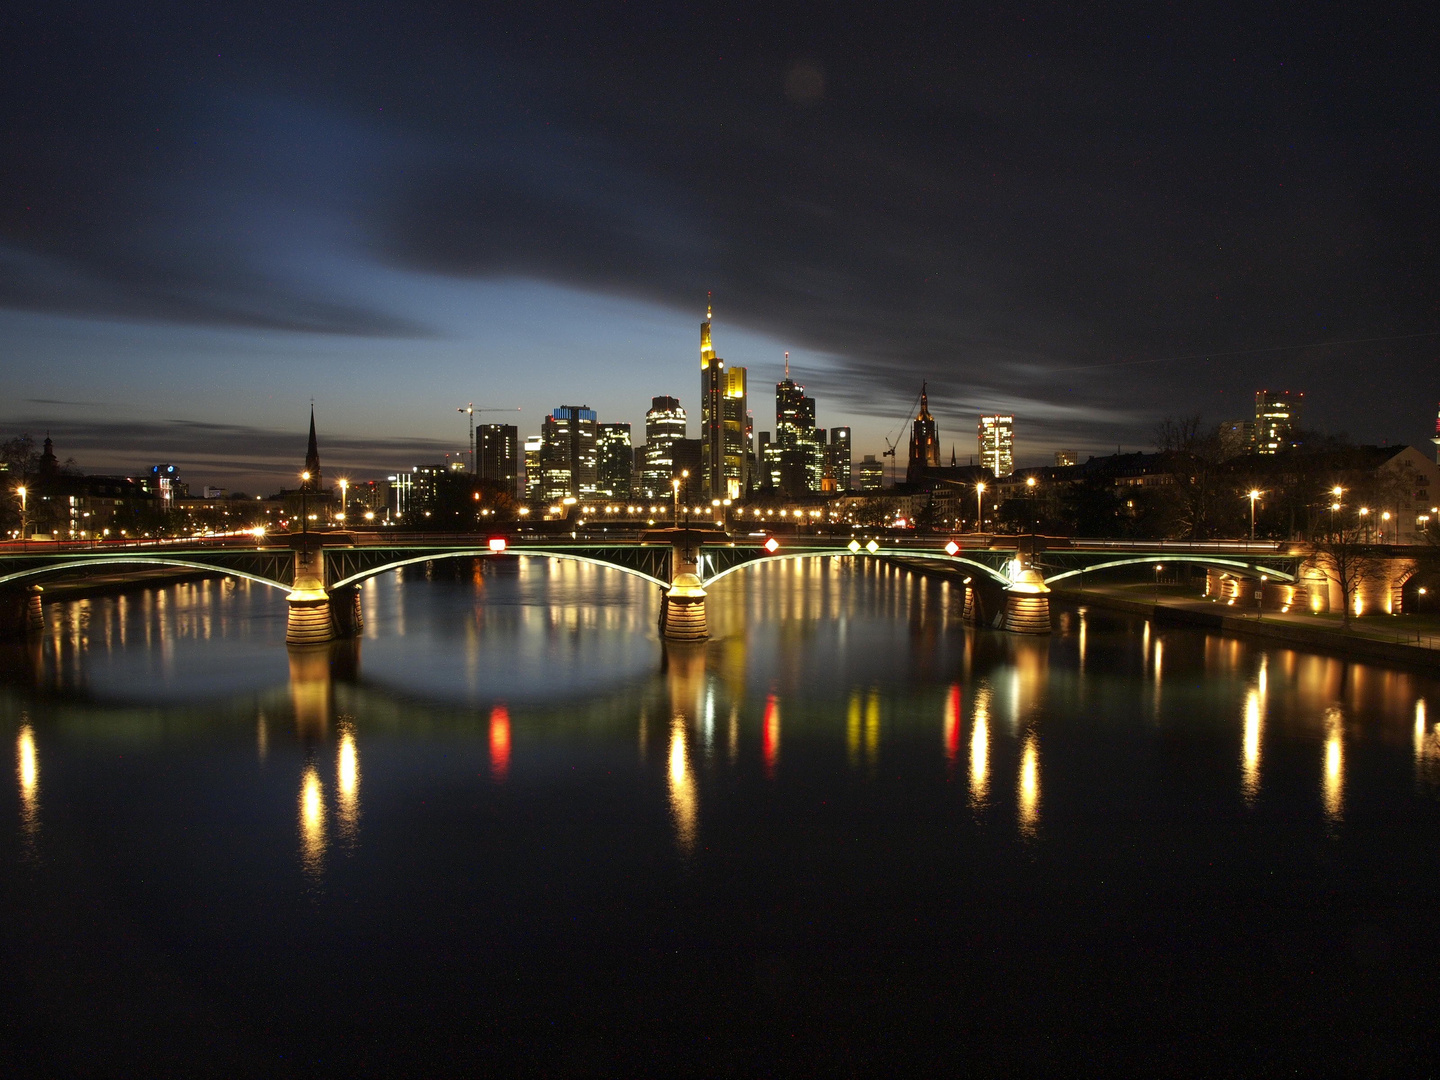 frankfurt skyline foto bild architektur architektur bei nacht nacht bilder auf fotocommunity. Black Bedroom Furniture Sets. Home Design Ideas